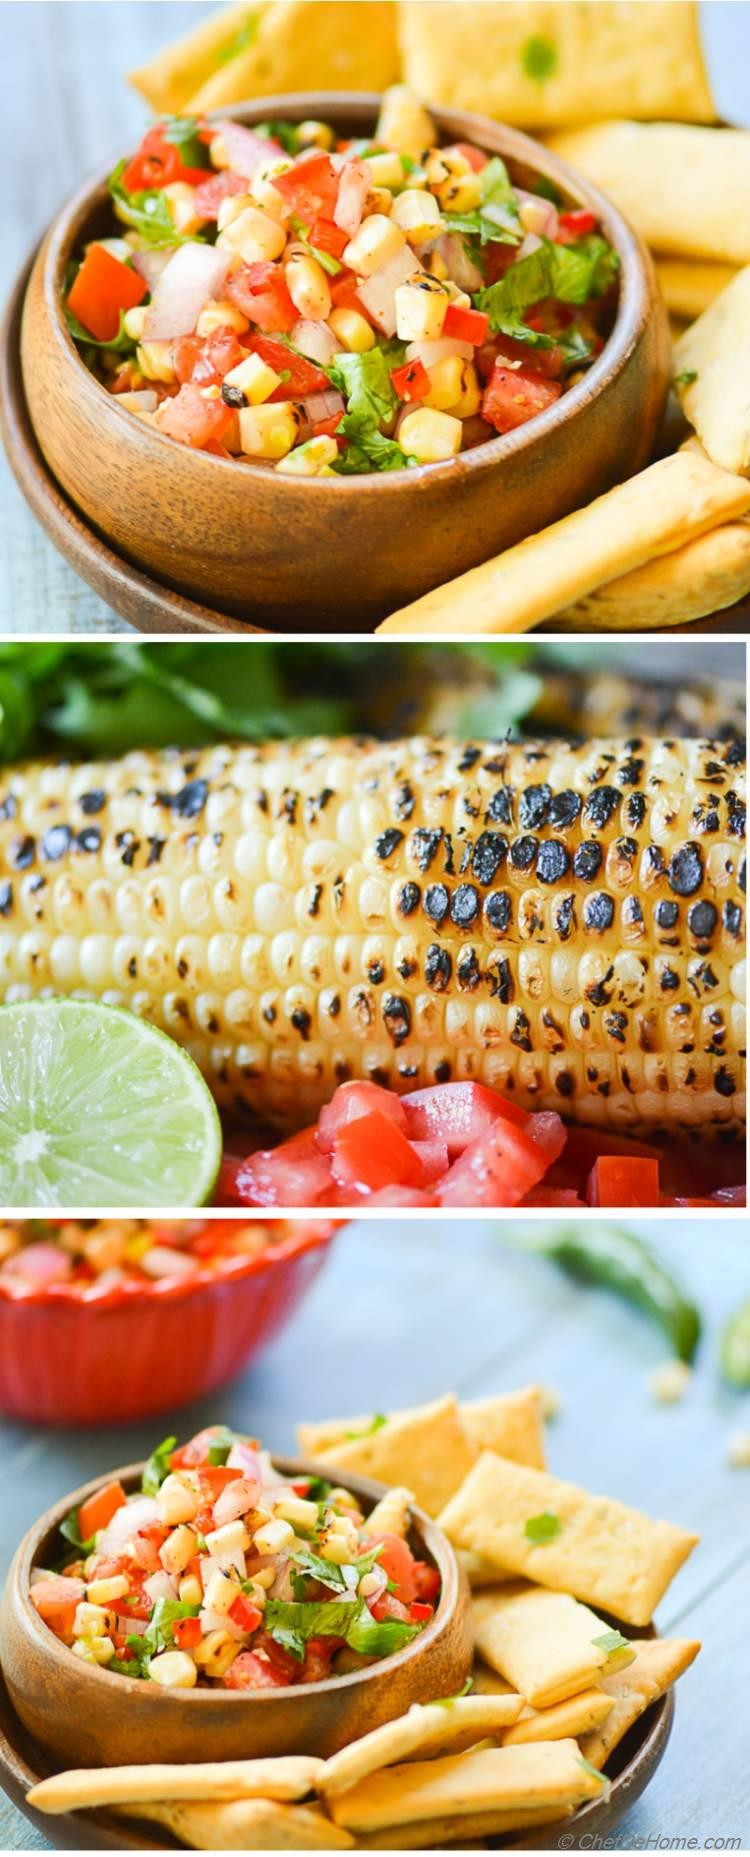 Chipotle Chili Lime Corn Salsa has sweetness of roasted sweet corn and three kinds of chilies for extra kick.